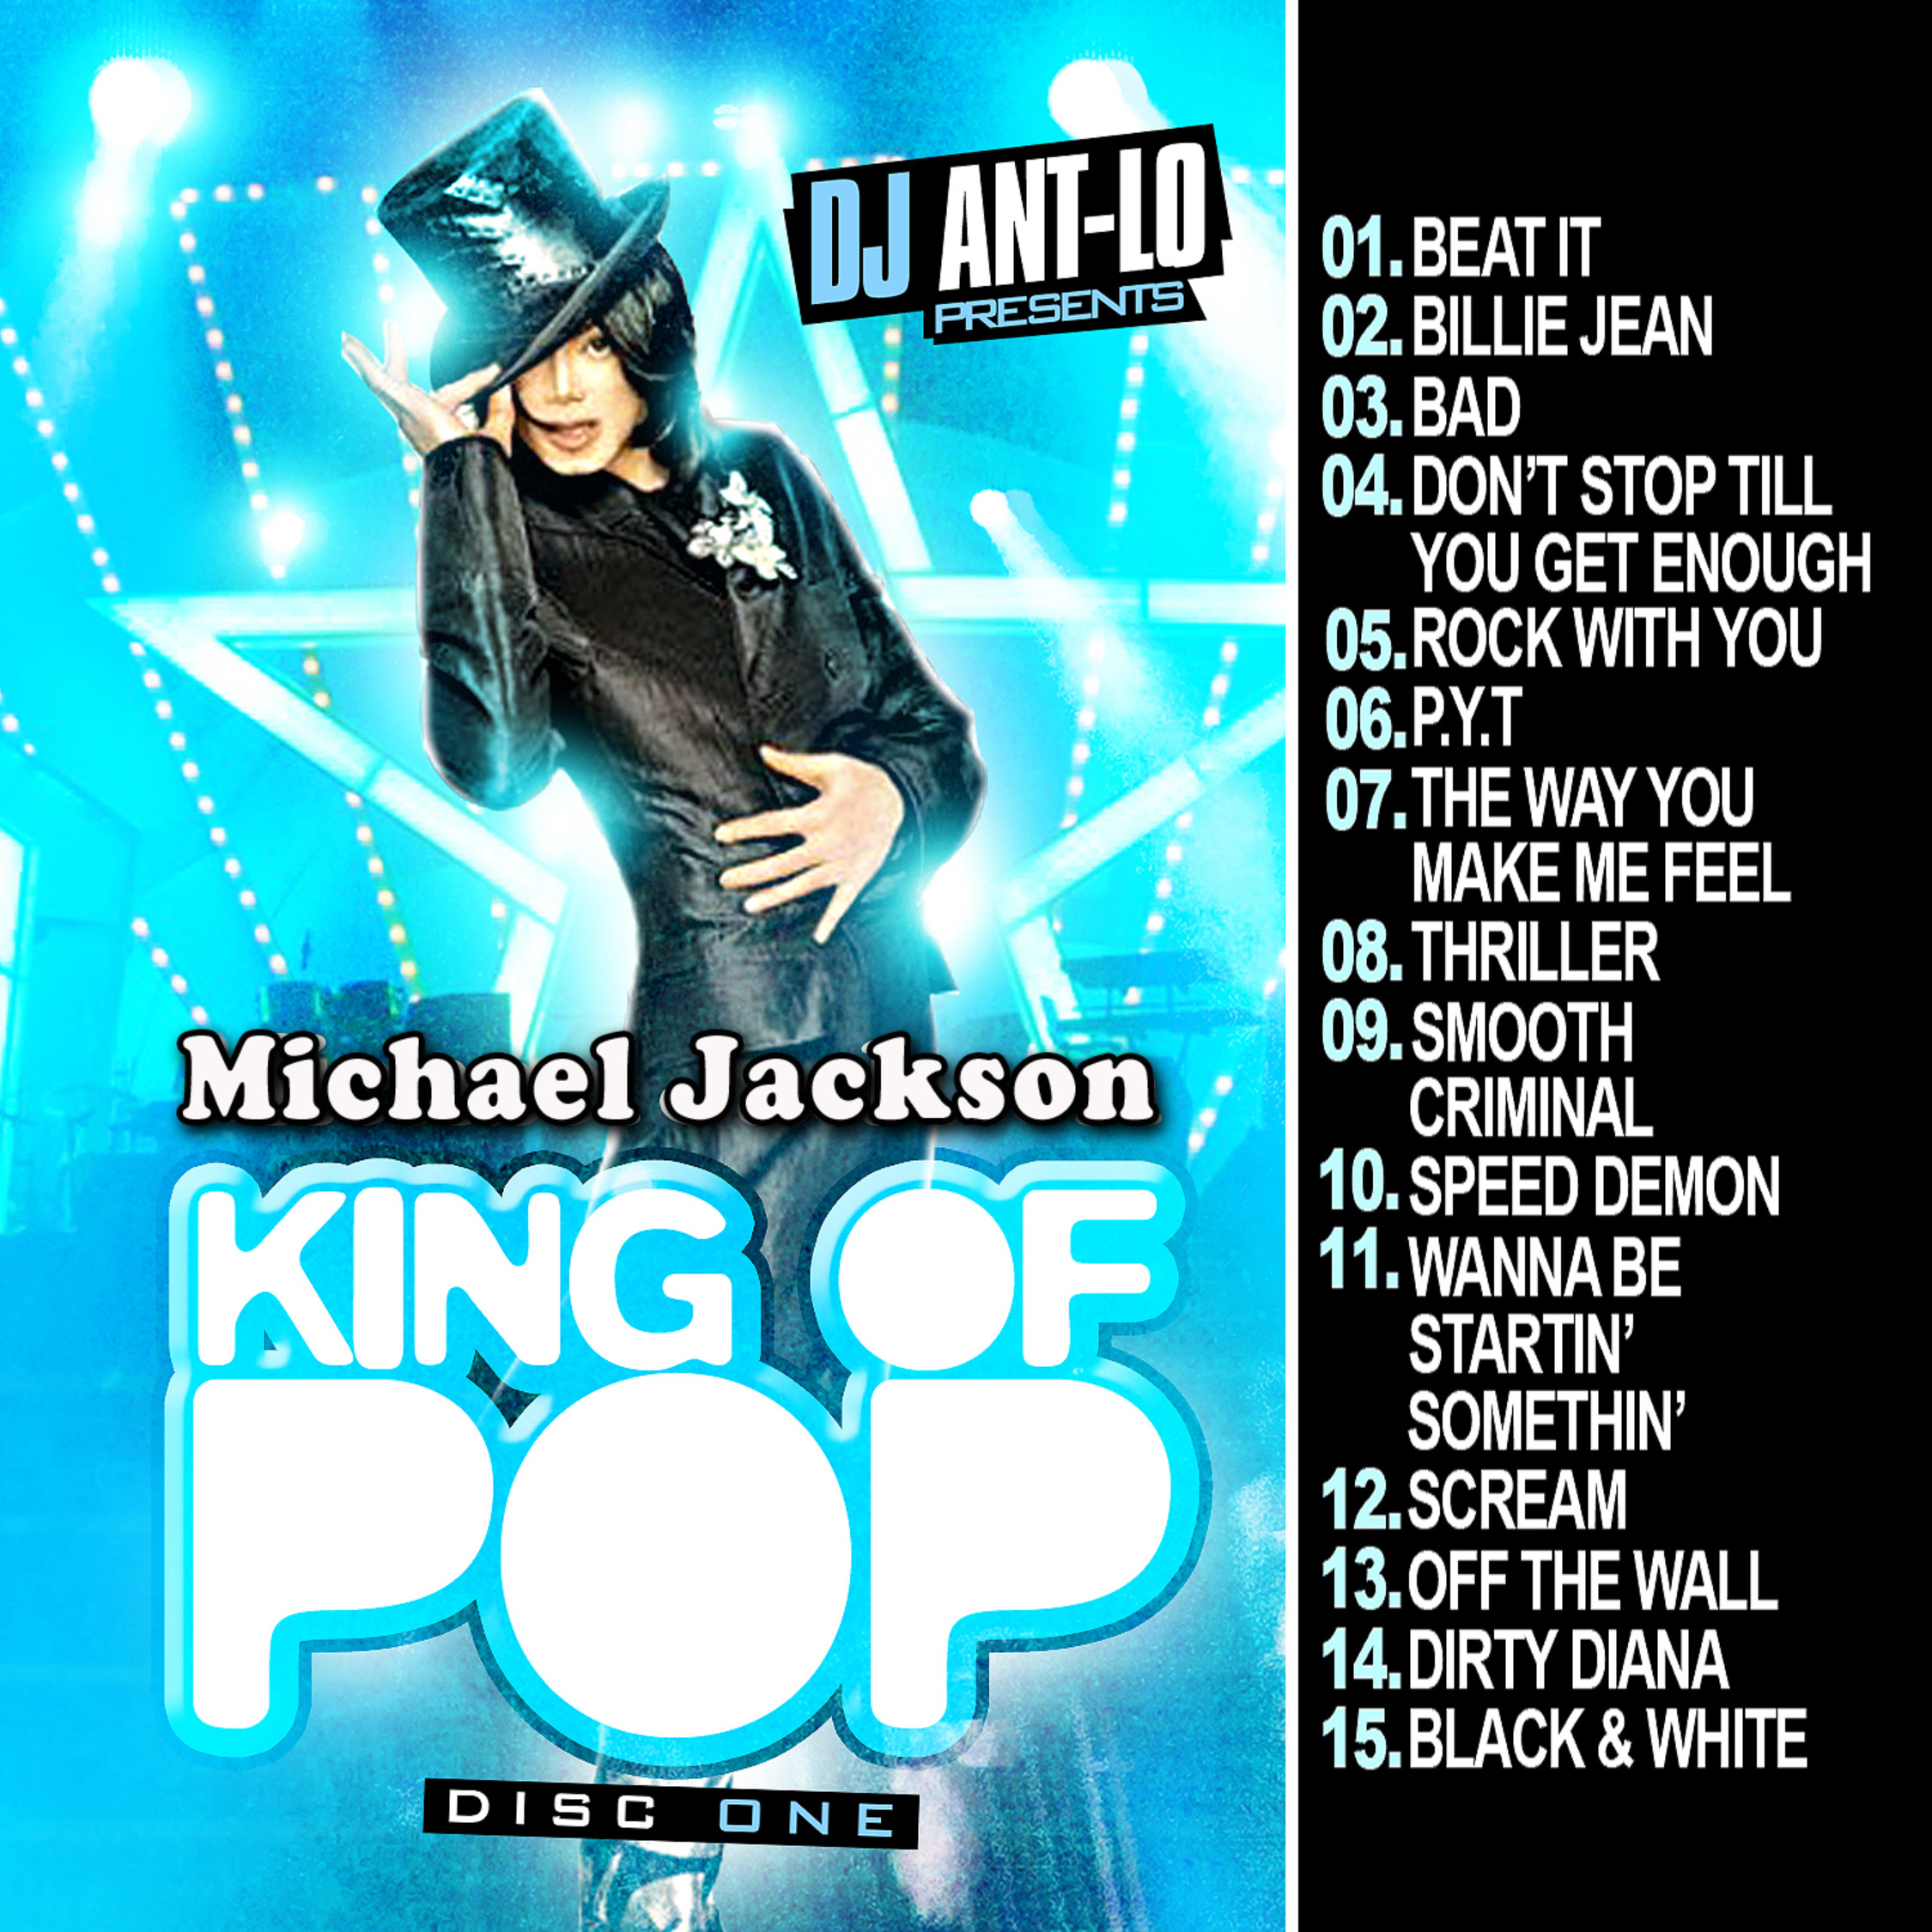 The Best Of Michael Jackson KING OF POP DJ ANT LO MP3